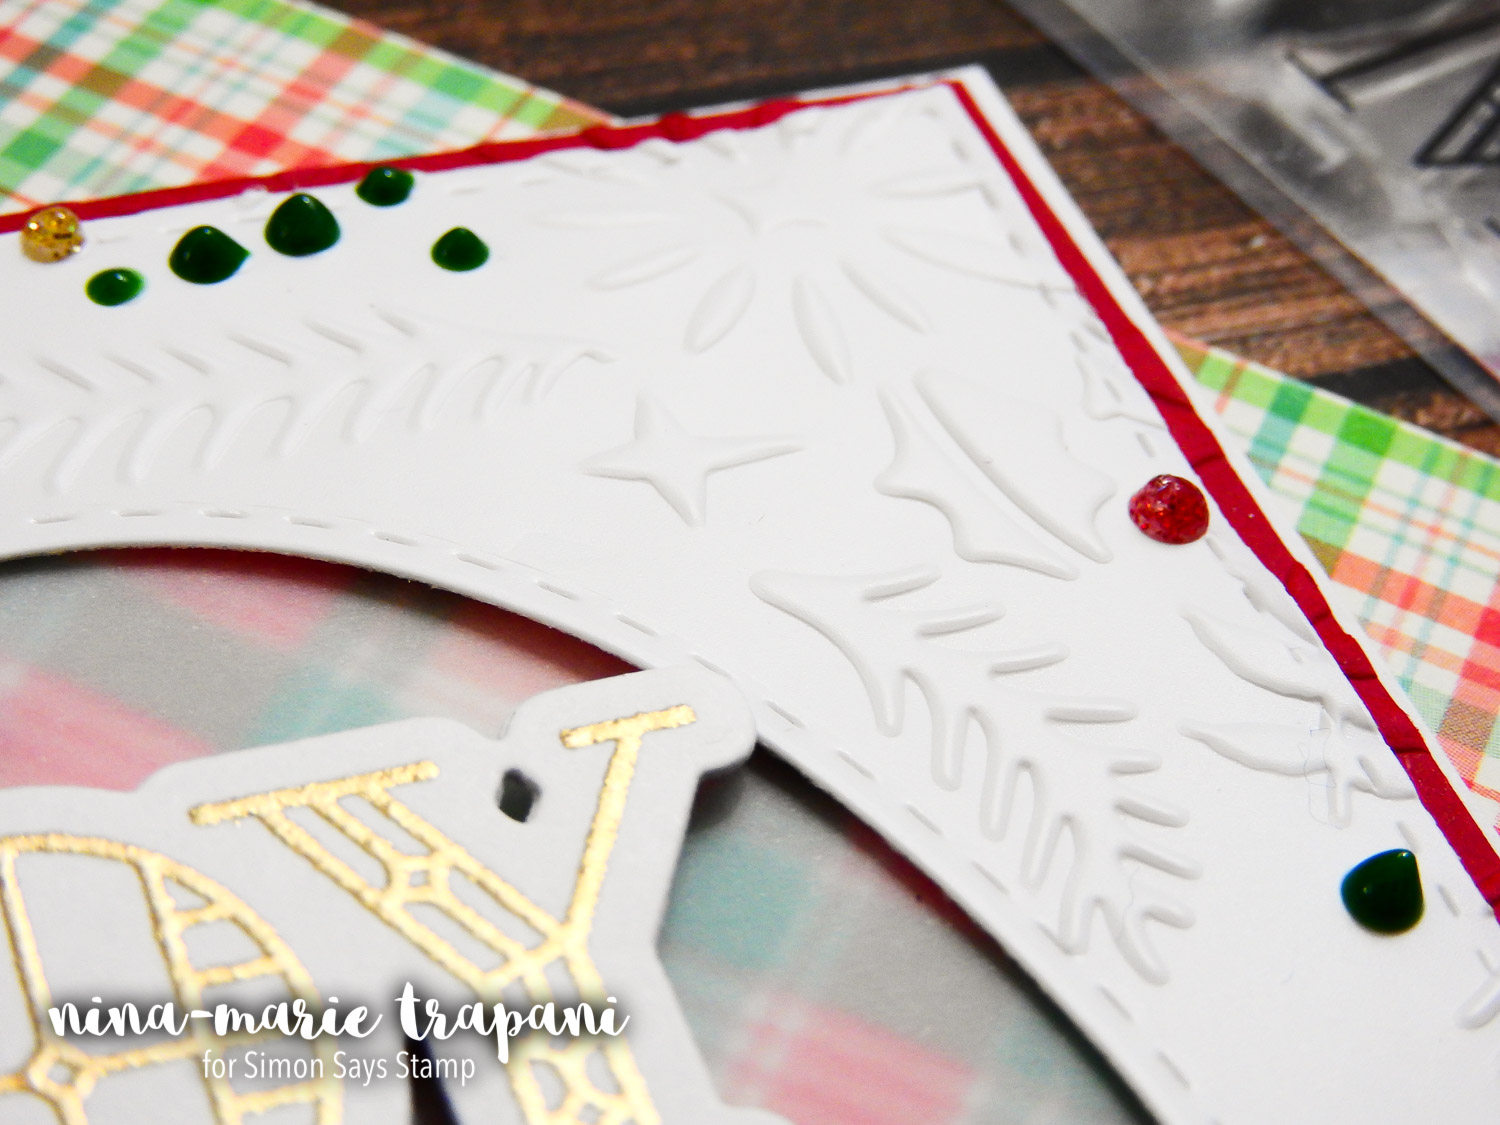 paper embossing stamp Cutting & embossing dies : free shipping on orders over $45 at overstockcom - your online die cutting store get 5% in rewards with club o.